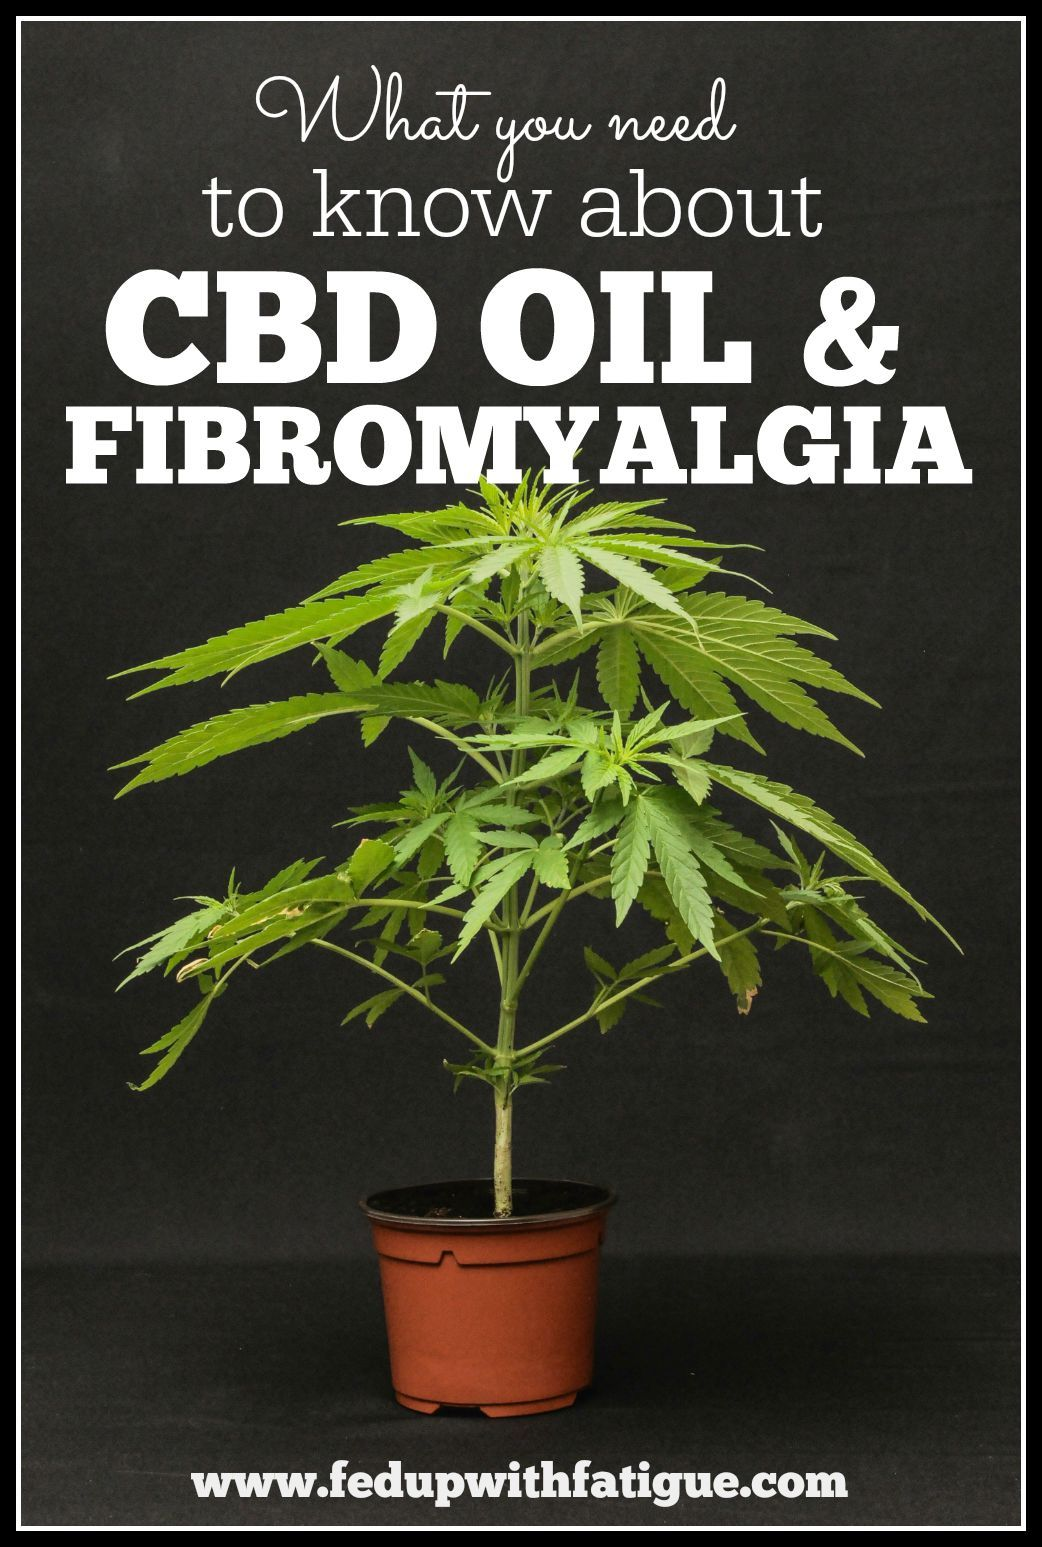 Element x cbd review reduces anxiety pain and stress is it legal - What You Need To Know About Cbd Oil And Fibromyalgia